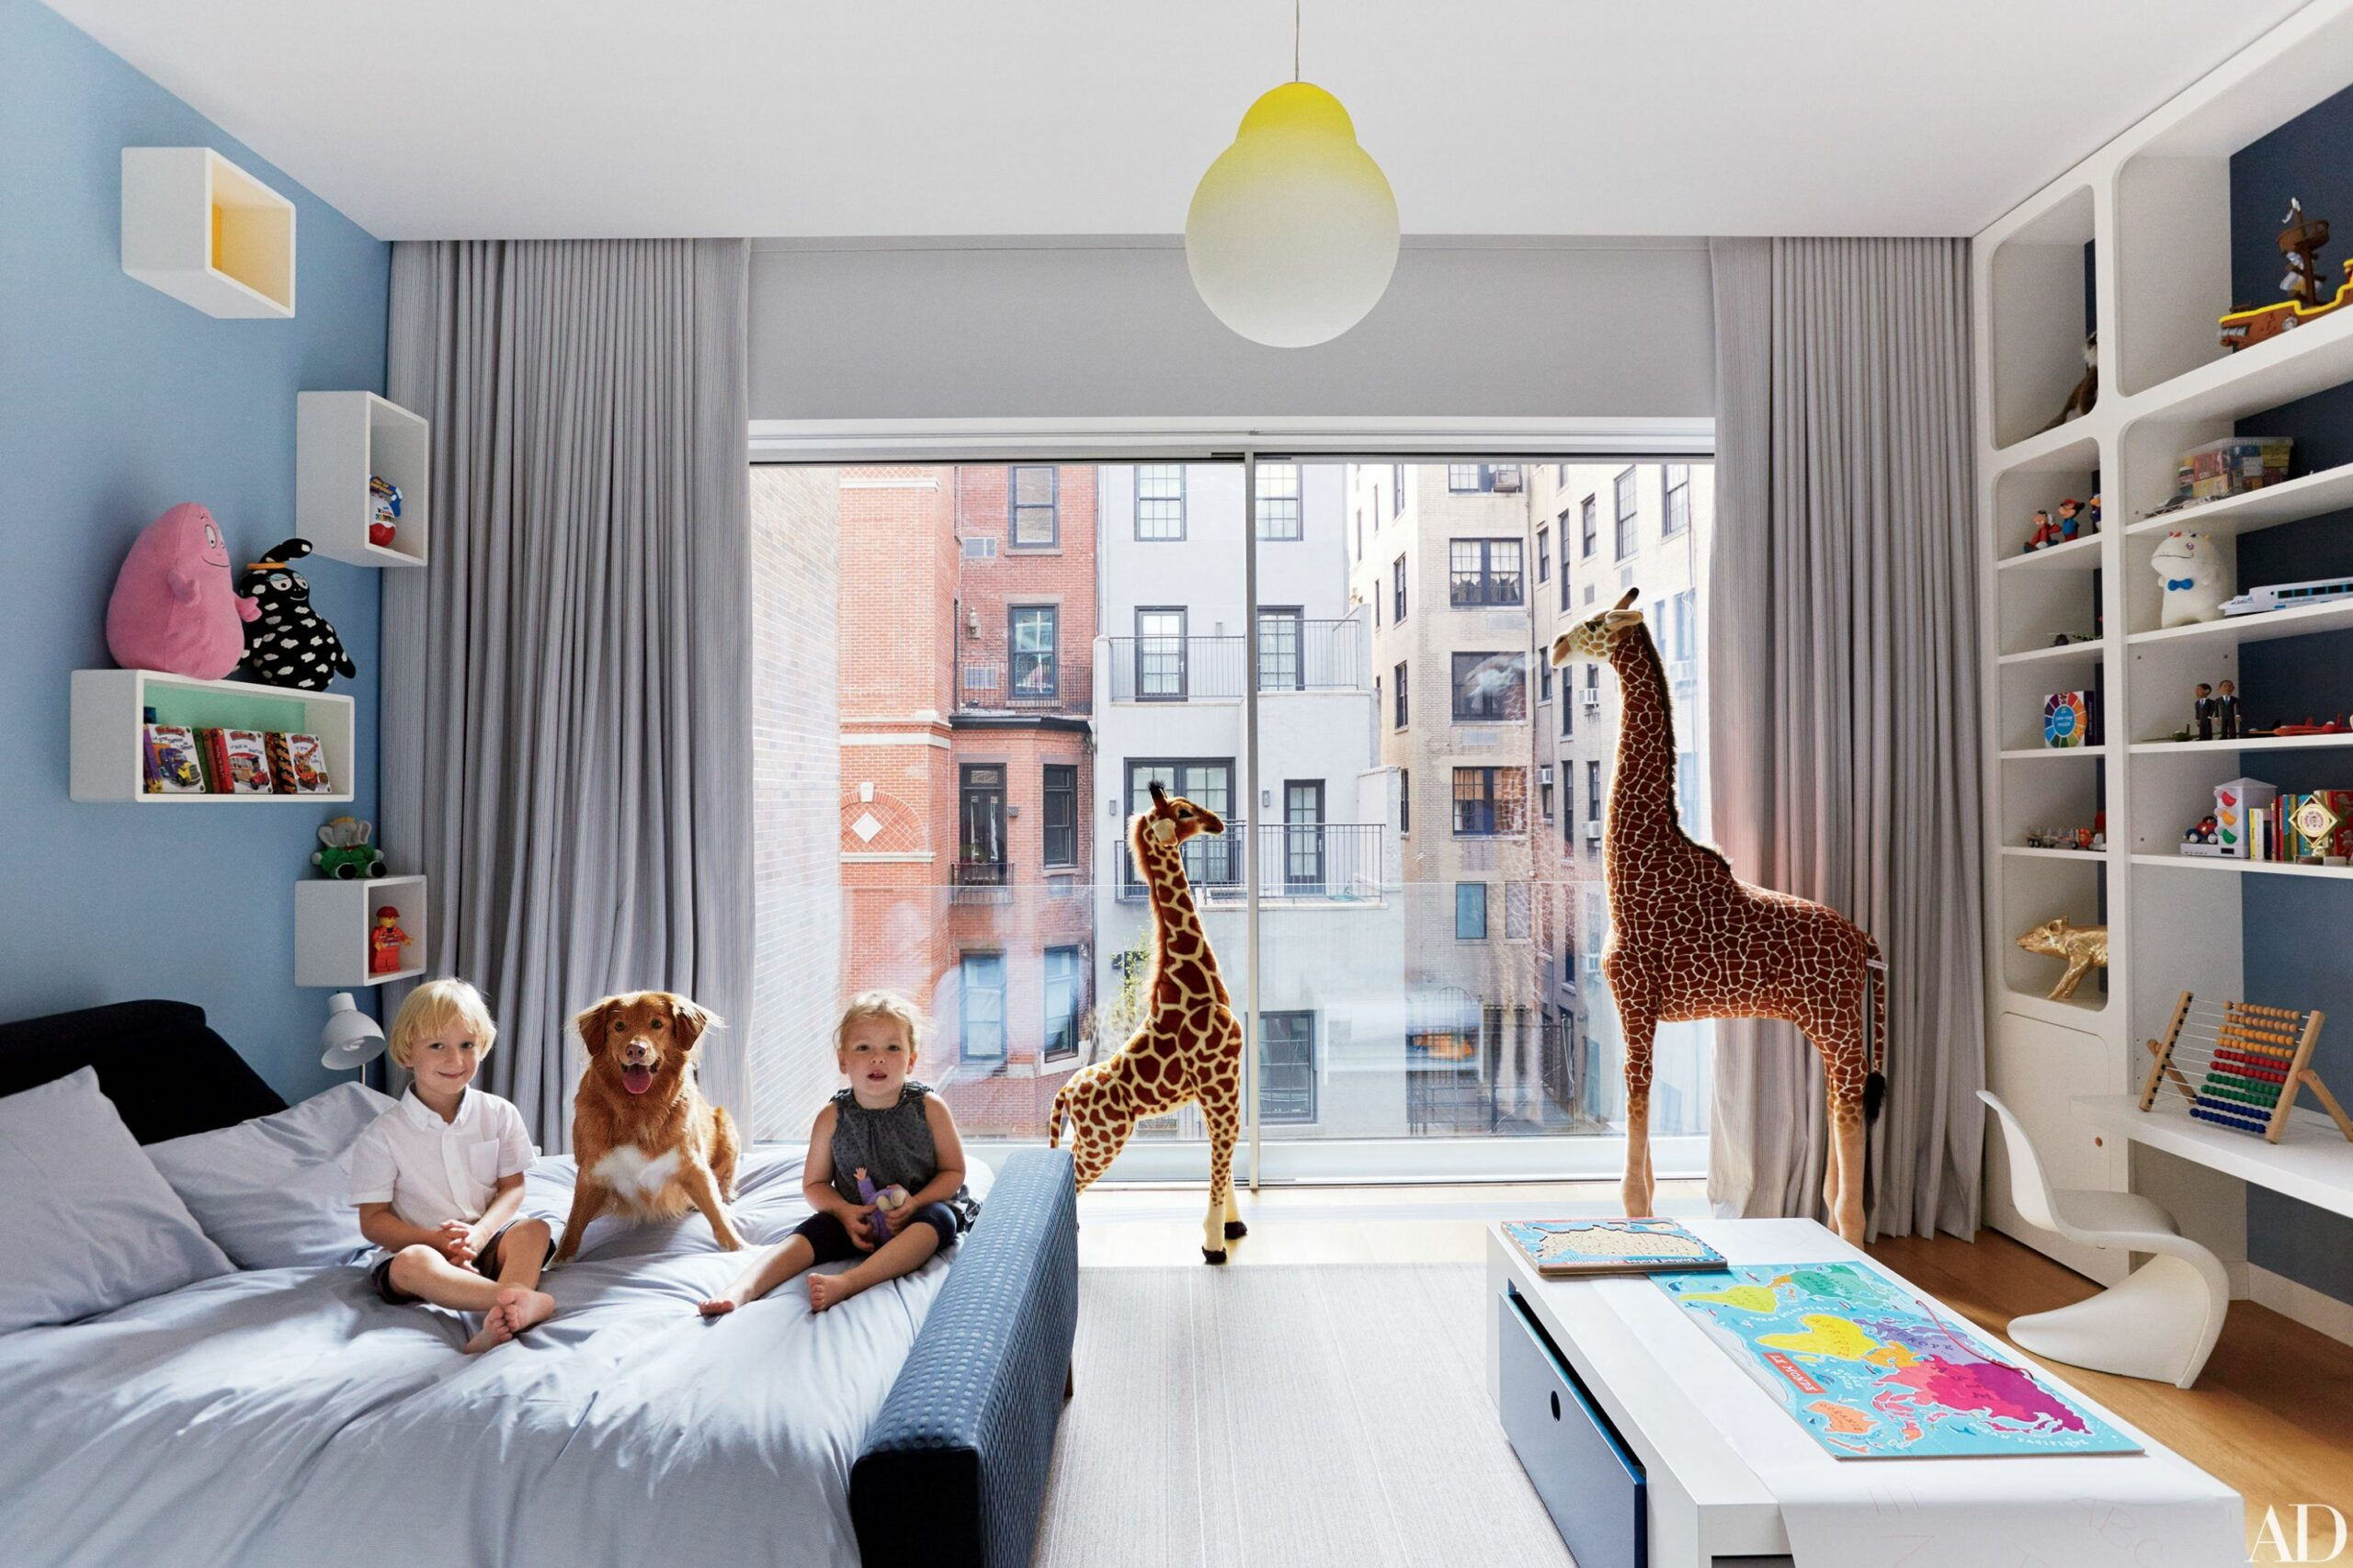 9 Stylish Kids Bedroom & Nursery Ideas | Architectural Digest - baby room pacific place